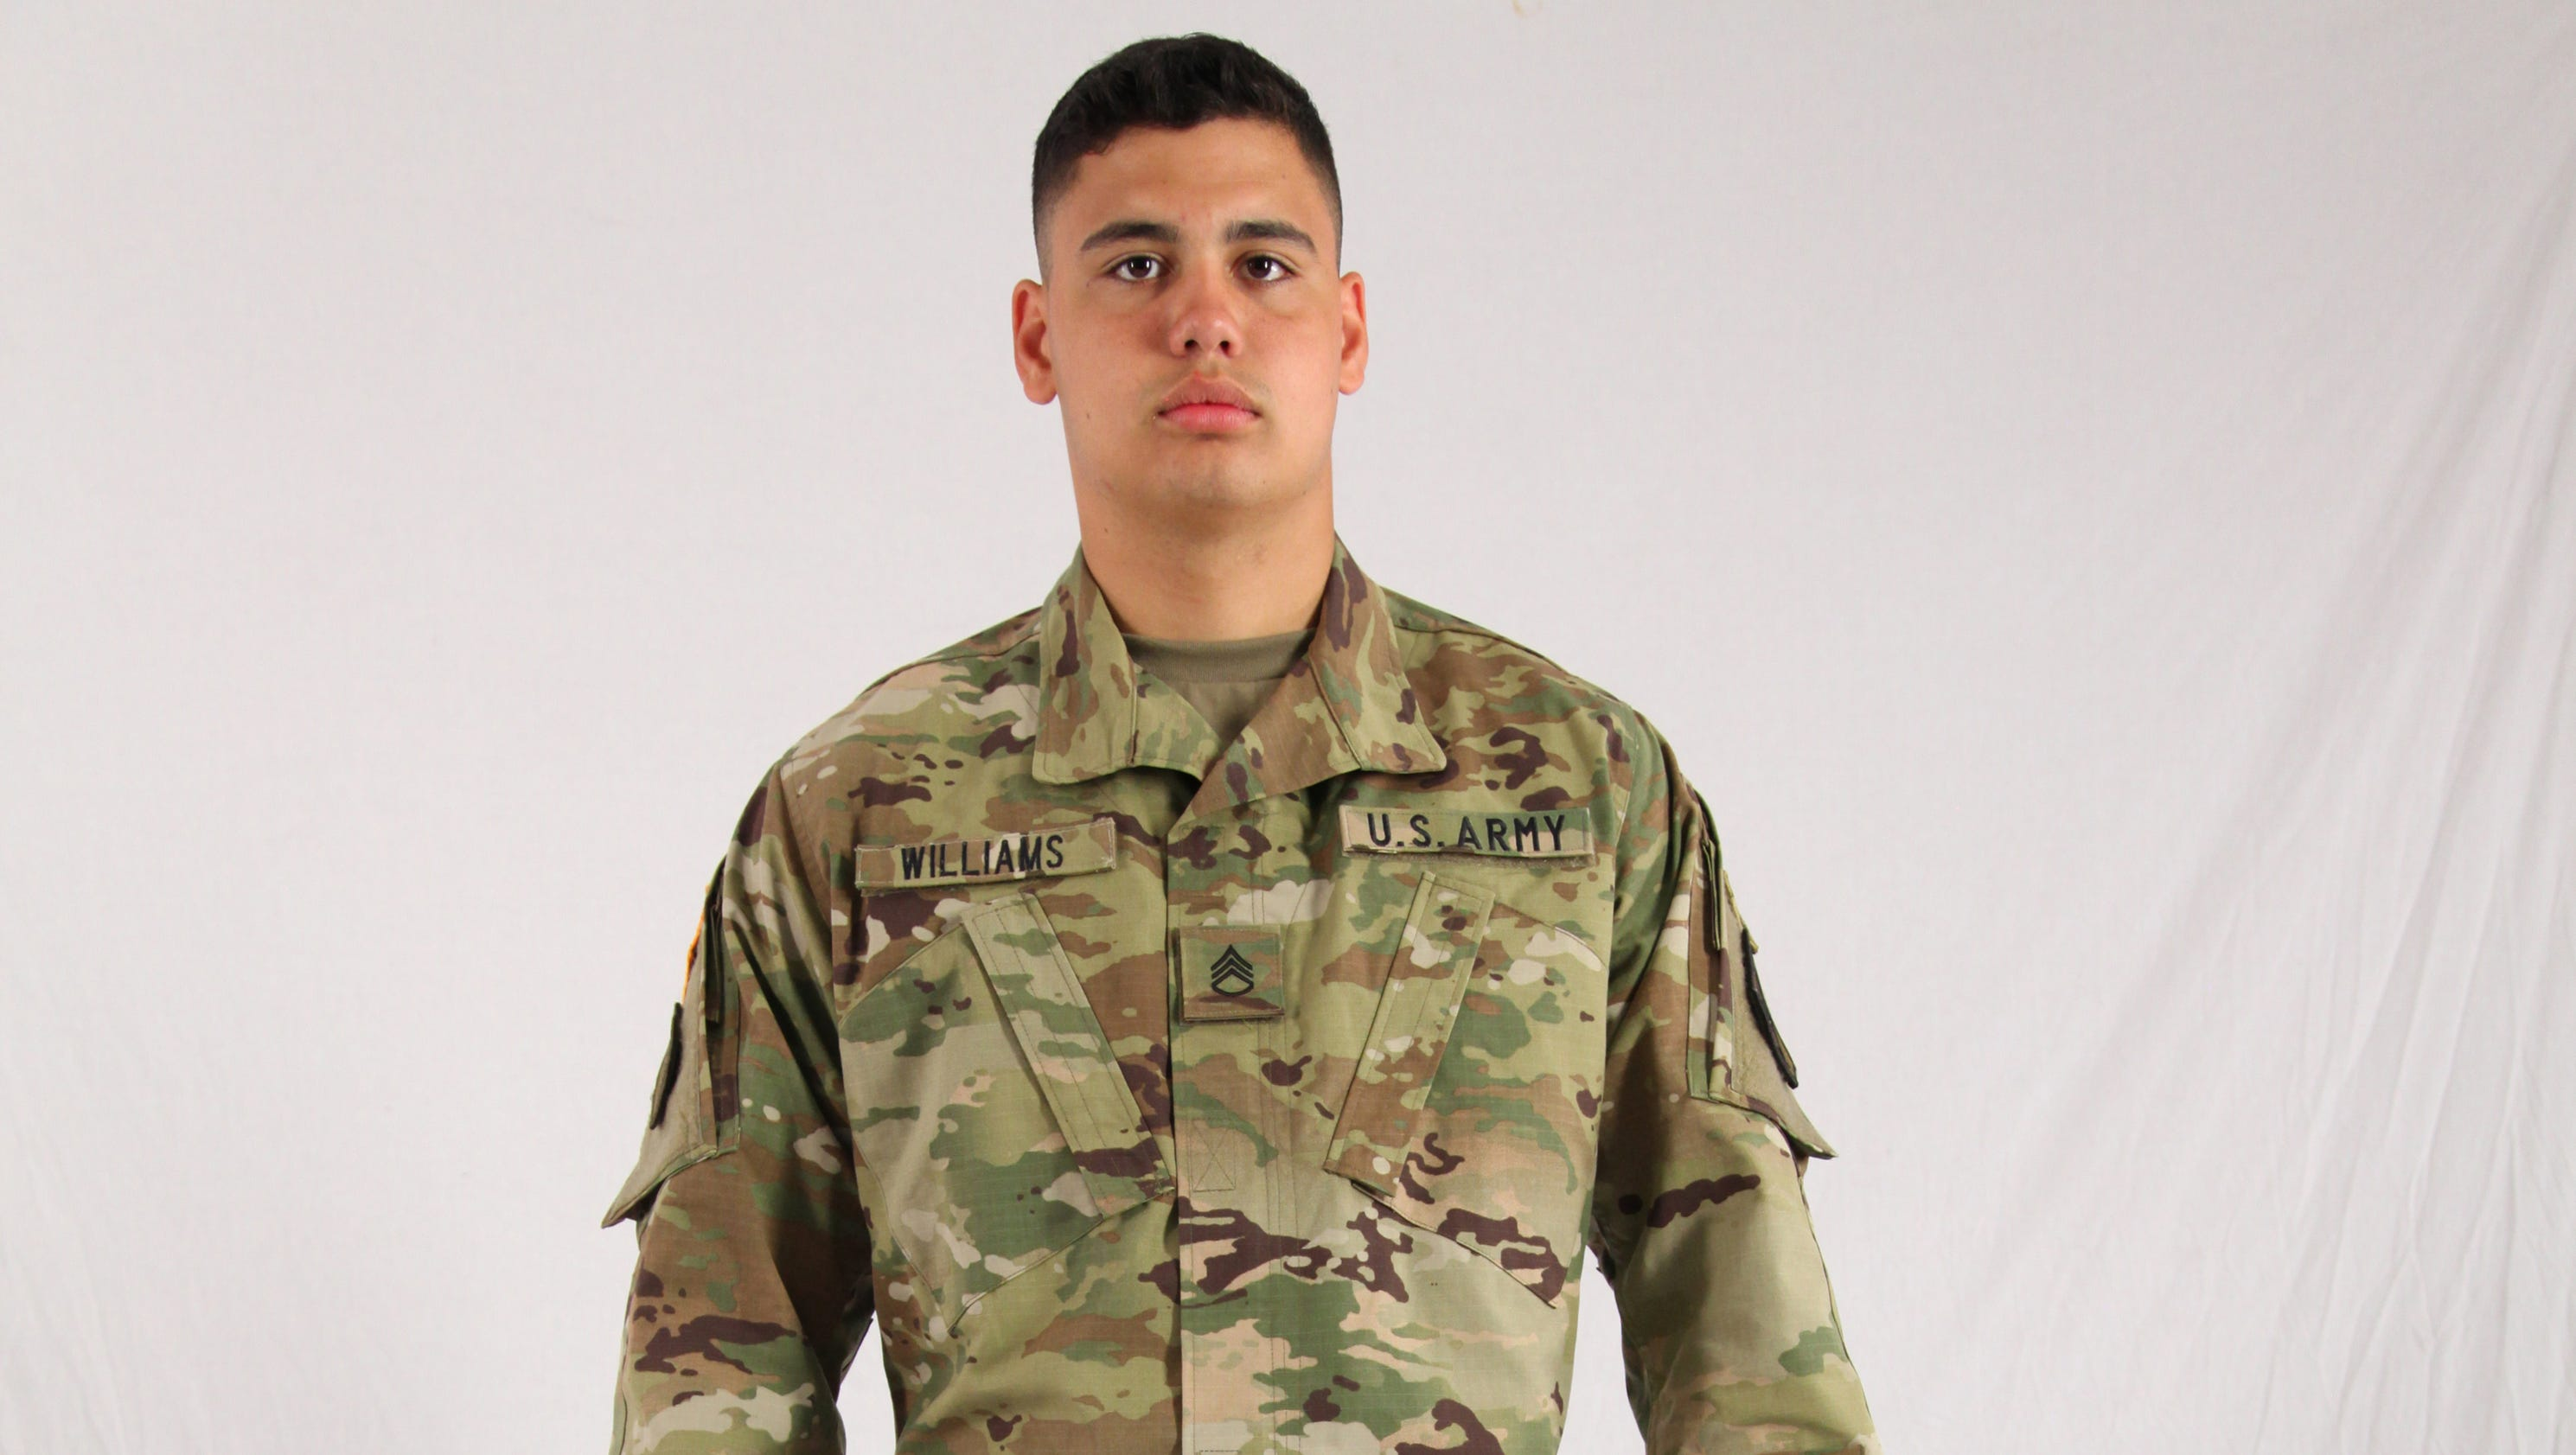 Army's new camouflage uniforms hit stores July 1 - photo#8